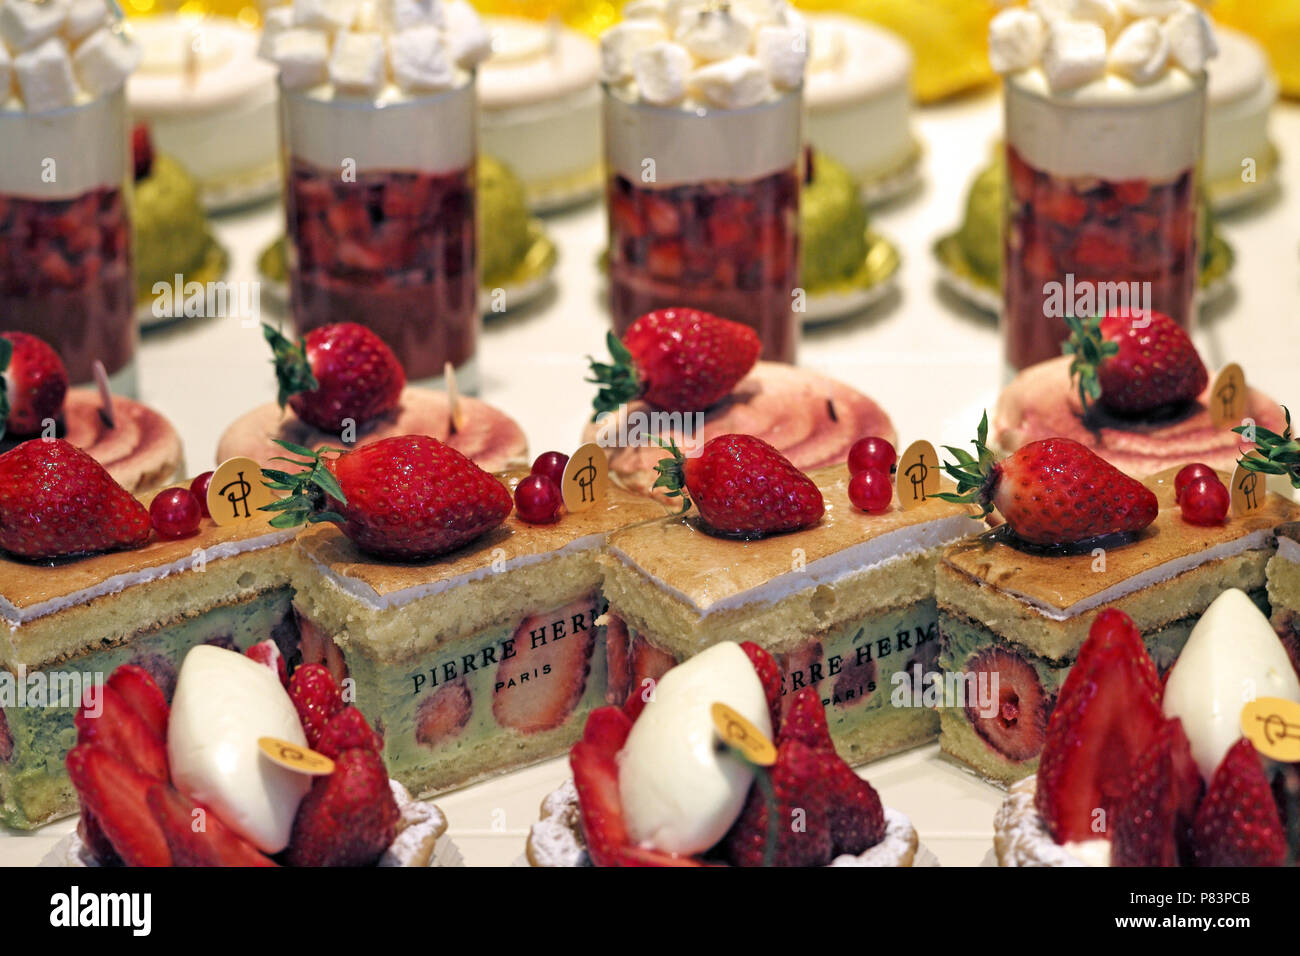 Variety of fresh fruit cakes and desserts displayed in a row, Paris, France, Europe - Stock Image